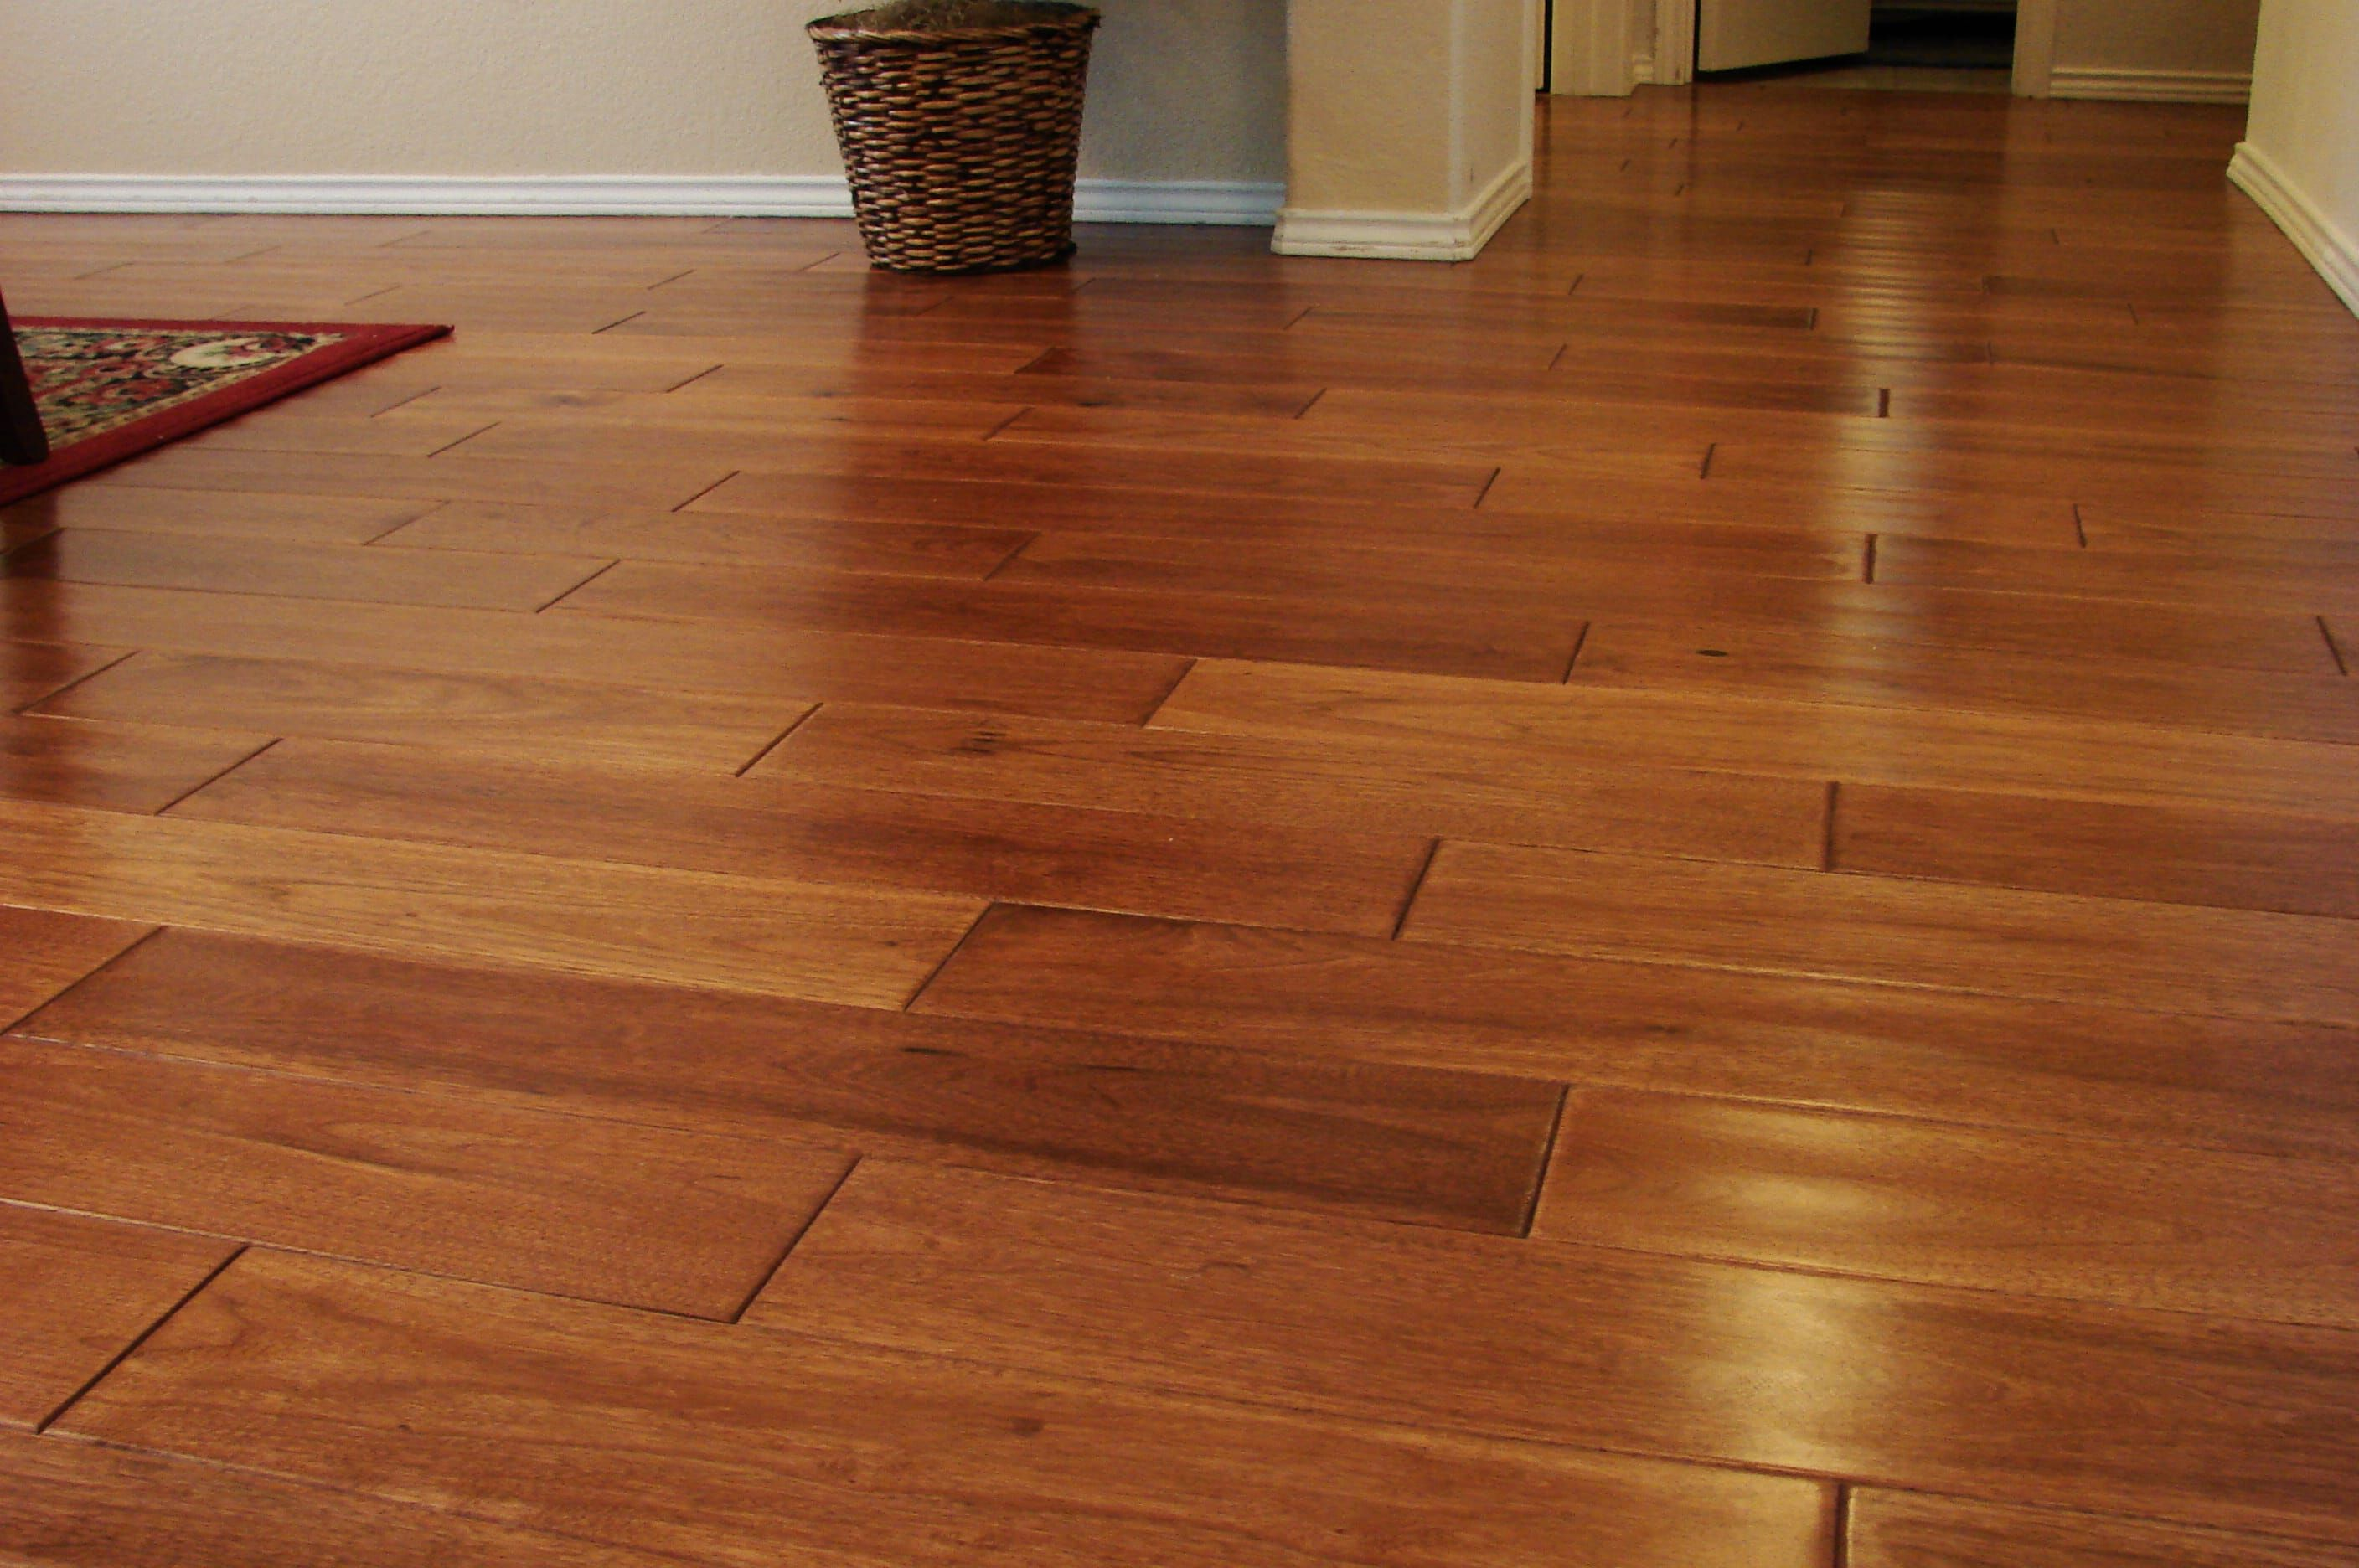 Easy Tips Removing Water Damage From Wood Its Works Water - Removing water stains from tile floors